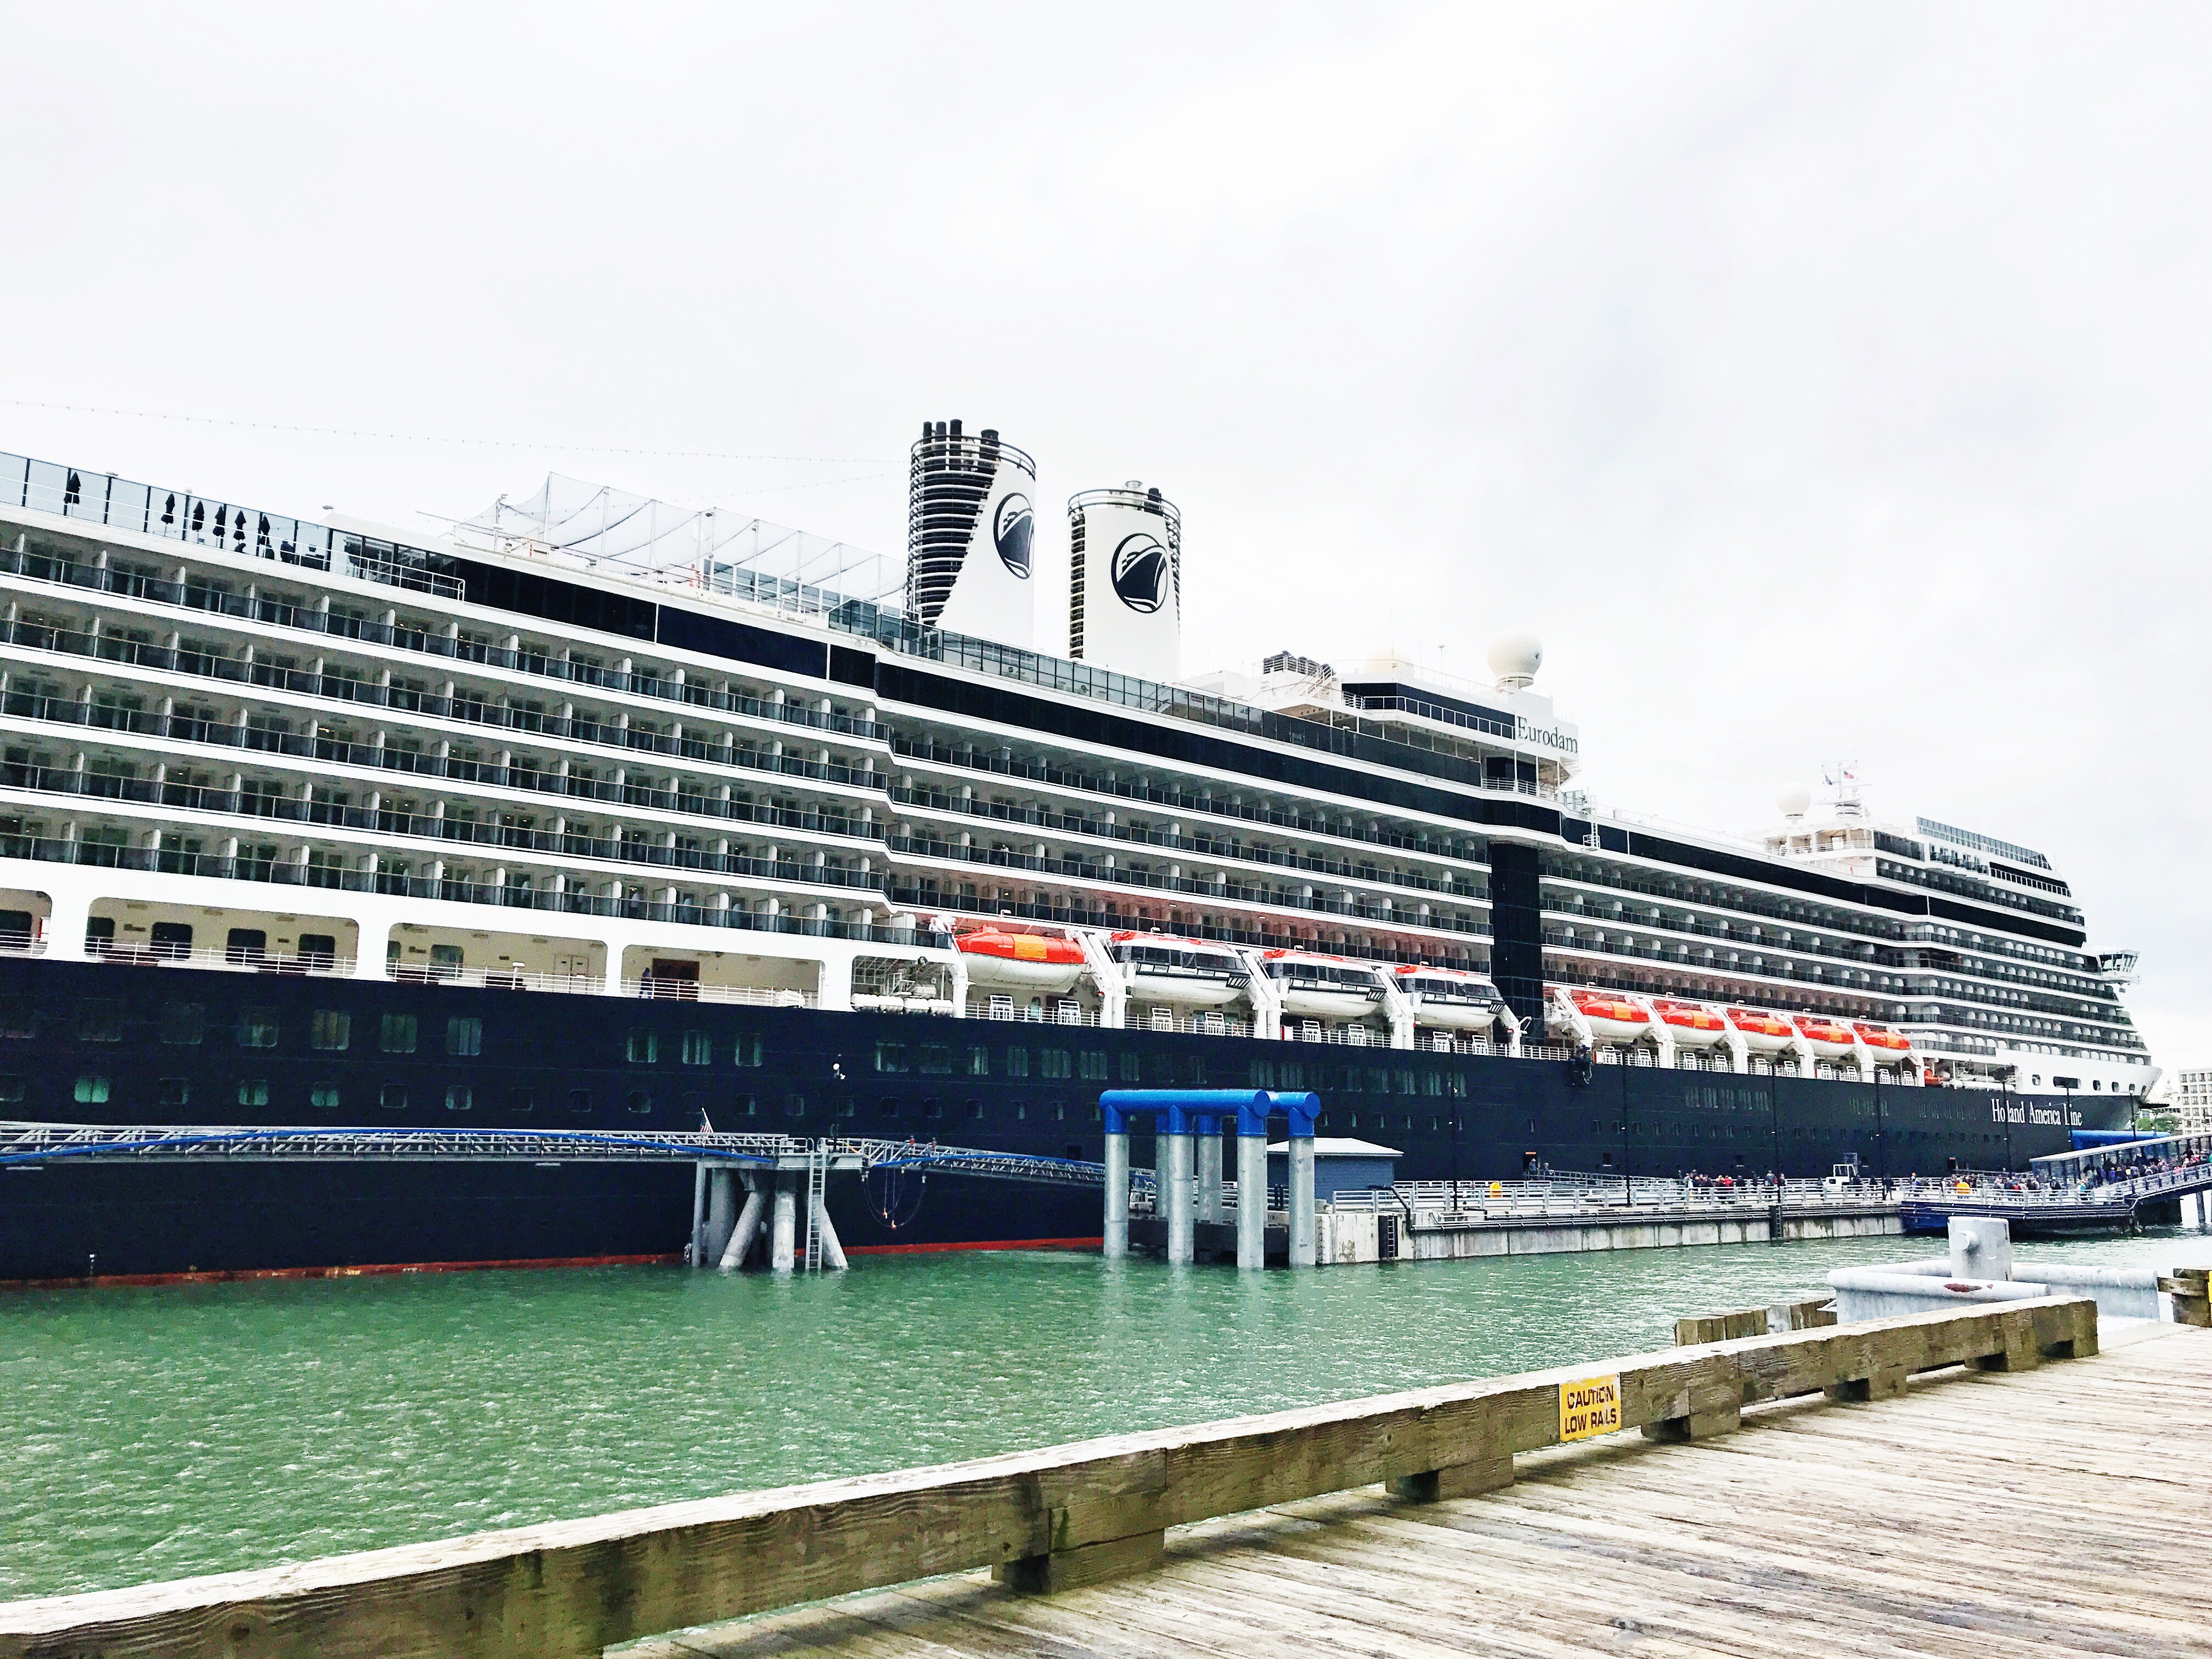 6 Ways Holland America Is Being More Eco-Friendly #cruise #alaskacruise #hollandamerica #environment #ecofriendly